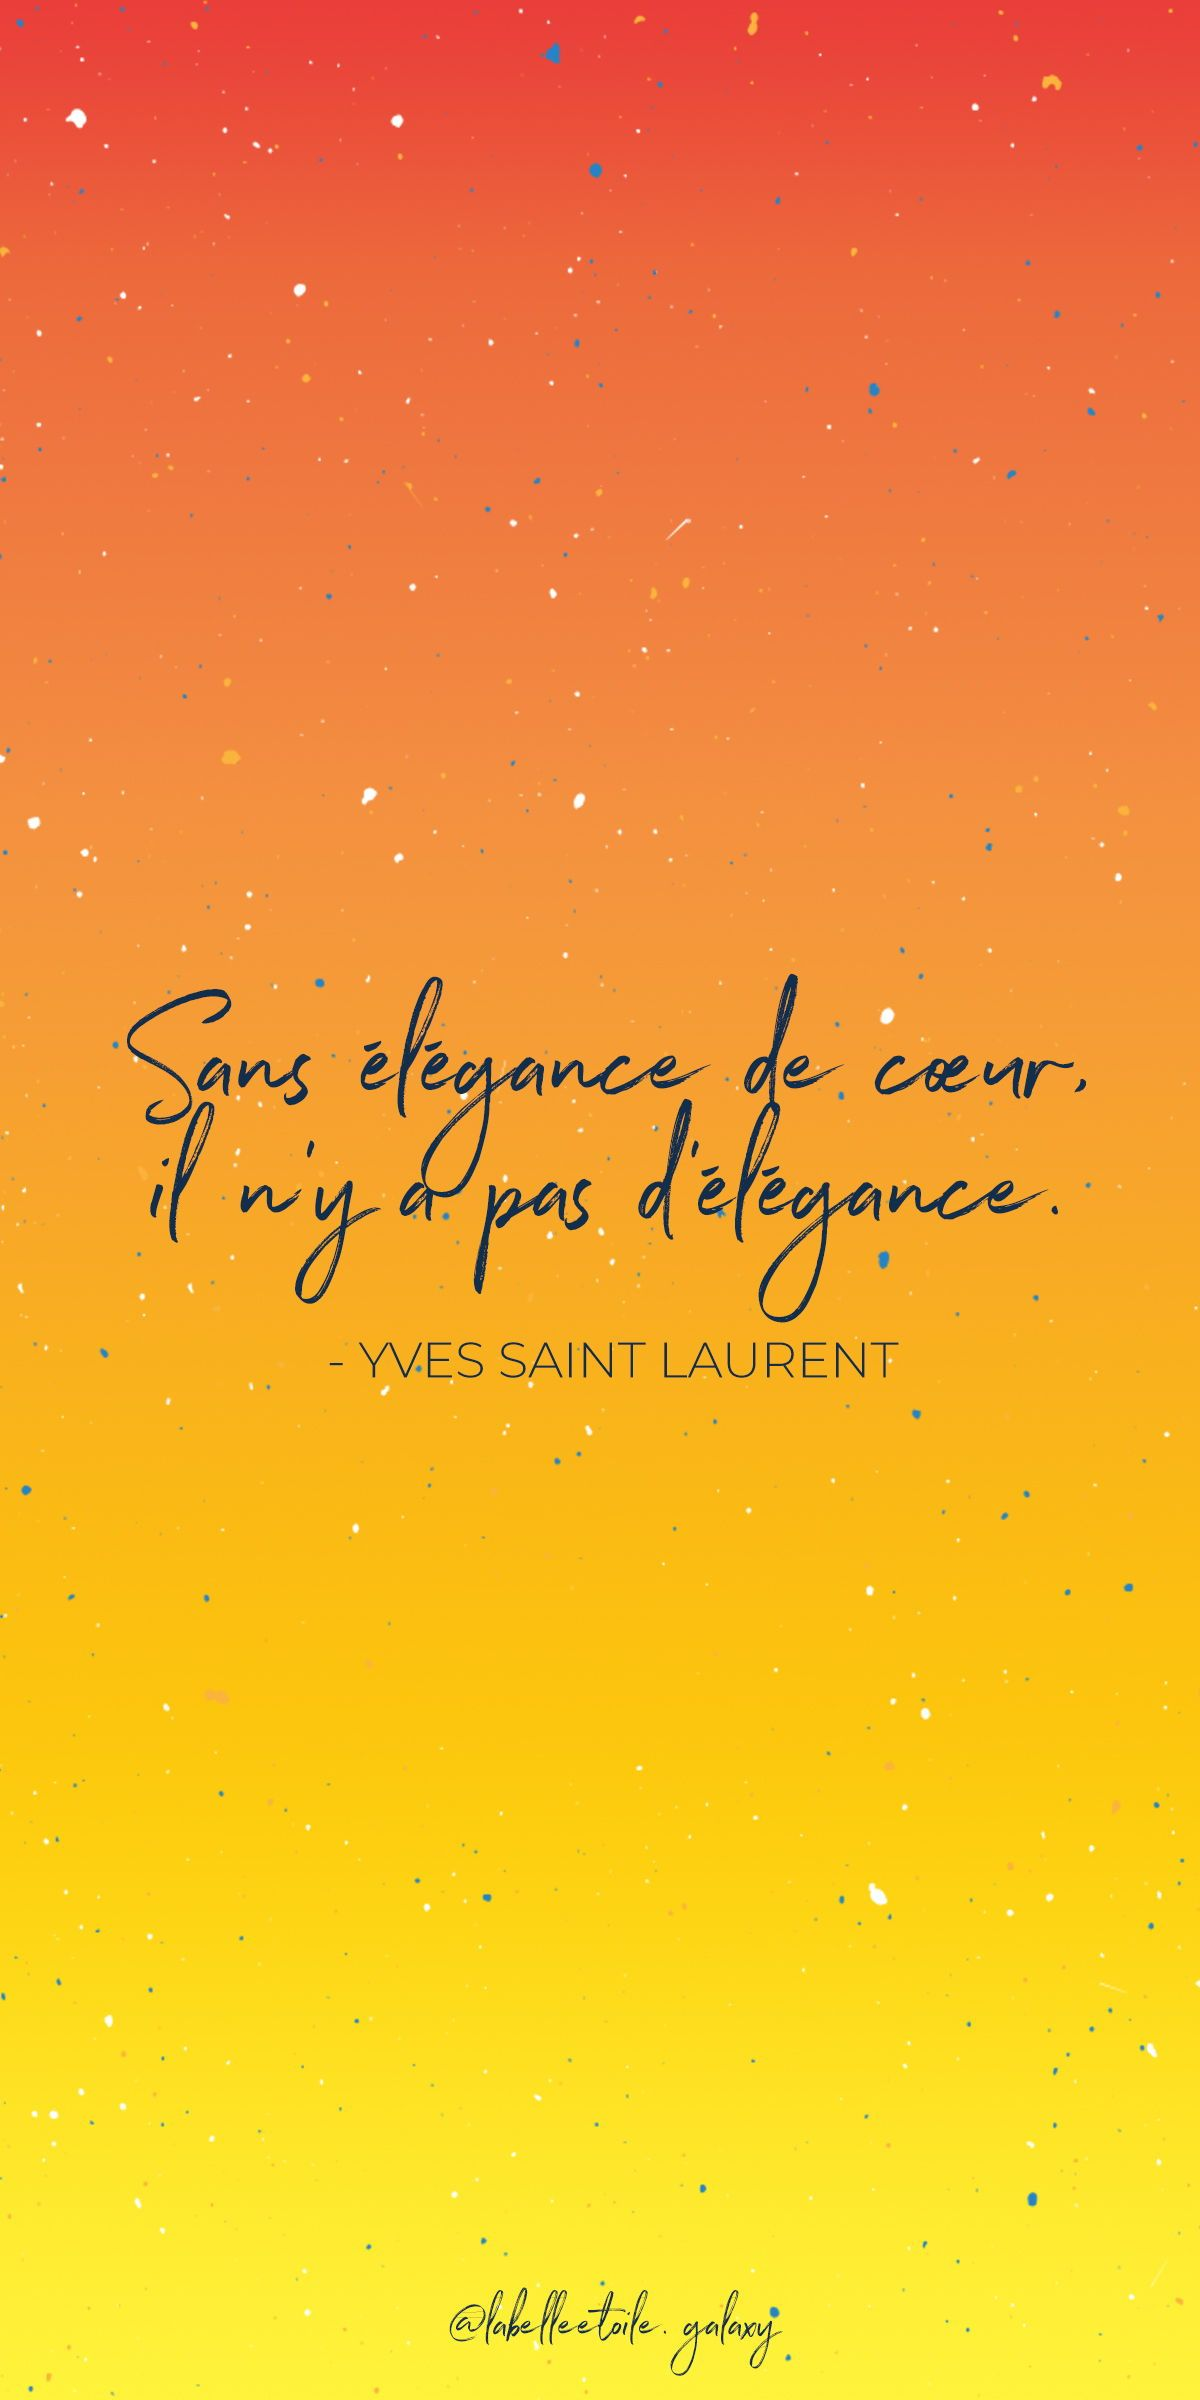 Without Elegance Of Heart There Is No Elegance Yves Saint Laurent French Fashion Designer French Expressions French Language Lessons French Quotes